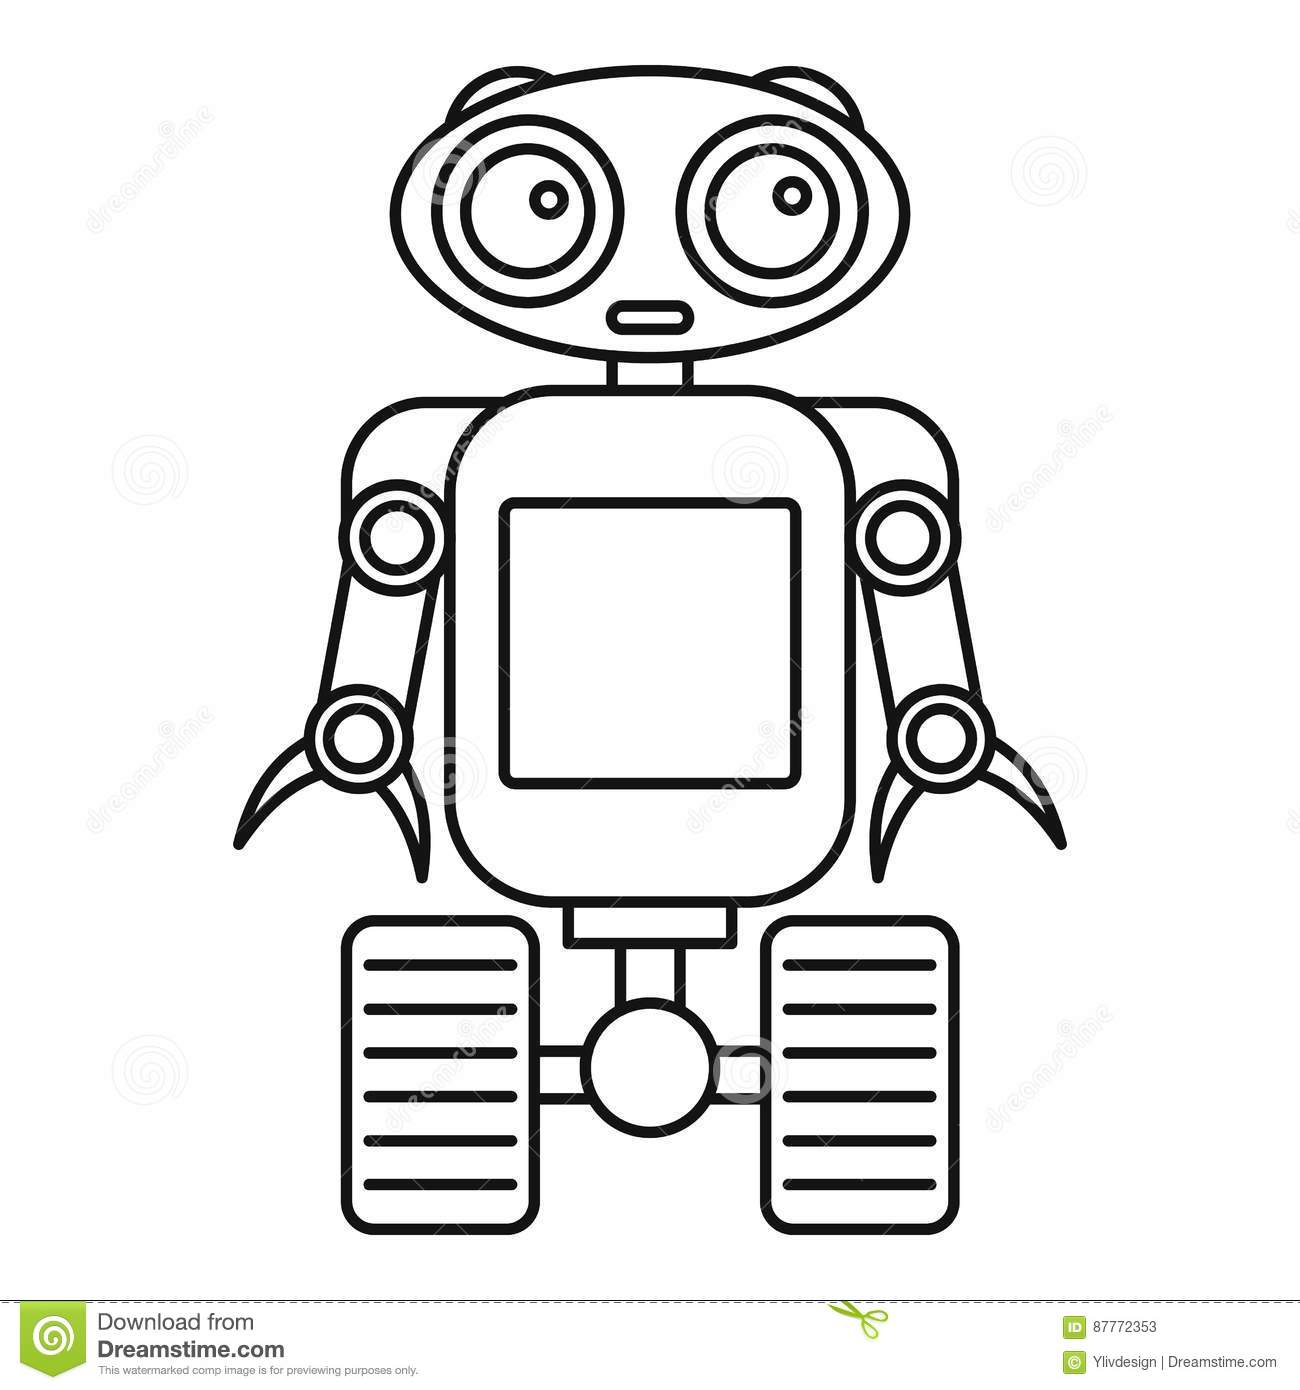 88345227 additionally 24775 as well Multi Purpose Robot Drawing Gm497834450 79345067 moreover Stock Illustration Vector Robot Silhouette Set Icons Mono Symbols Flat Design Style Robots Cyborgs Science Fiction Androids Artificial Image76913540 besides Ricatech Platenspeler. on robot antenna clip art